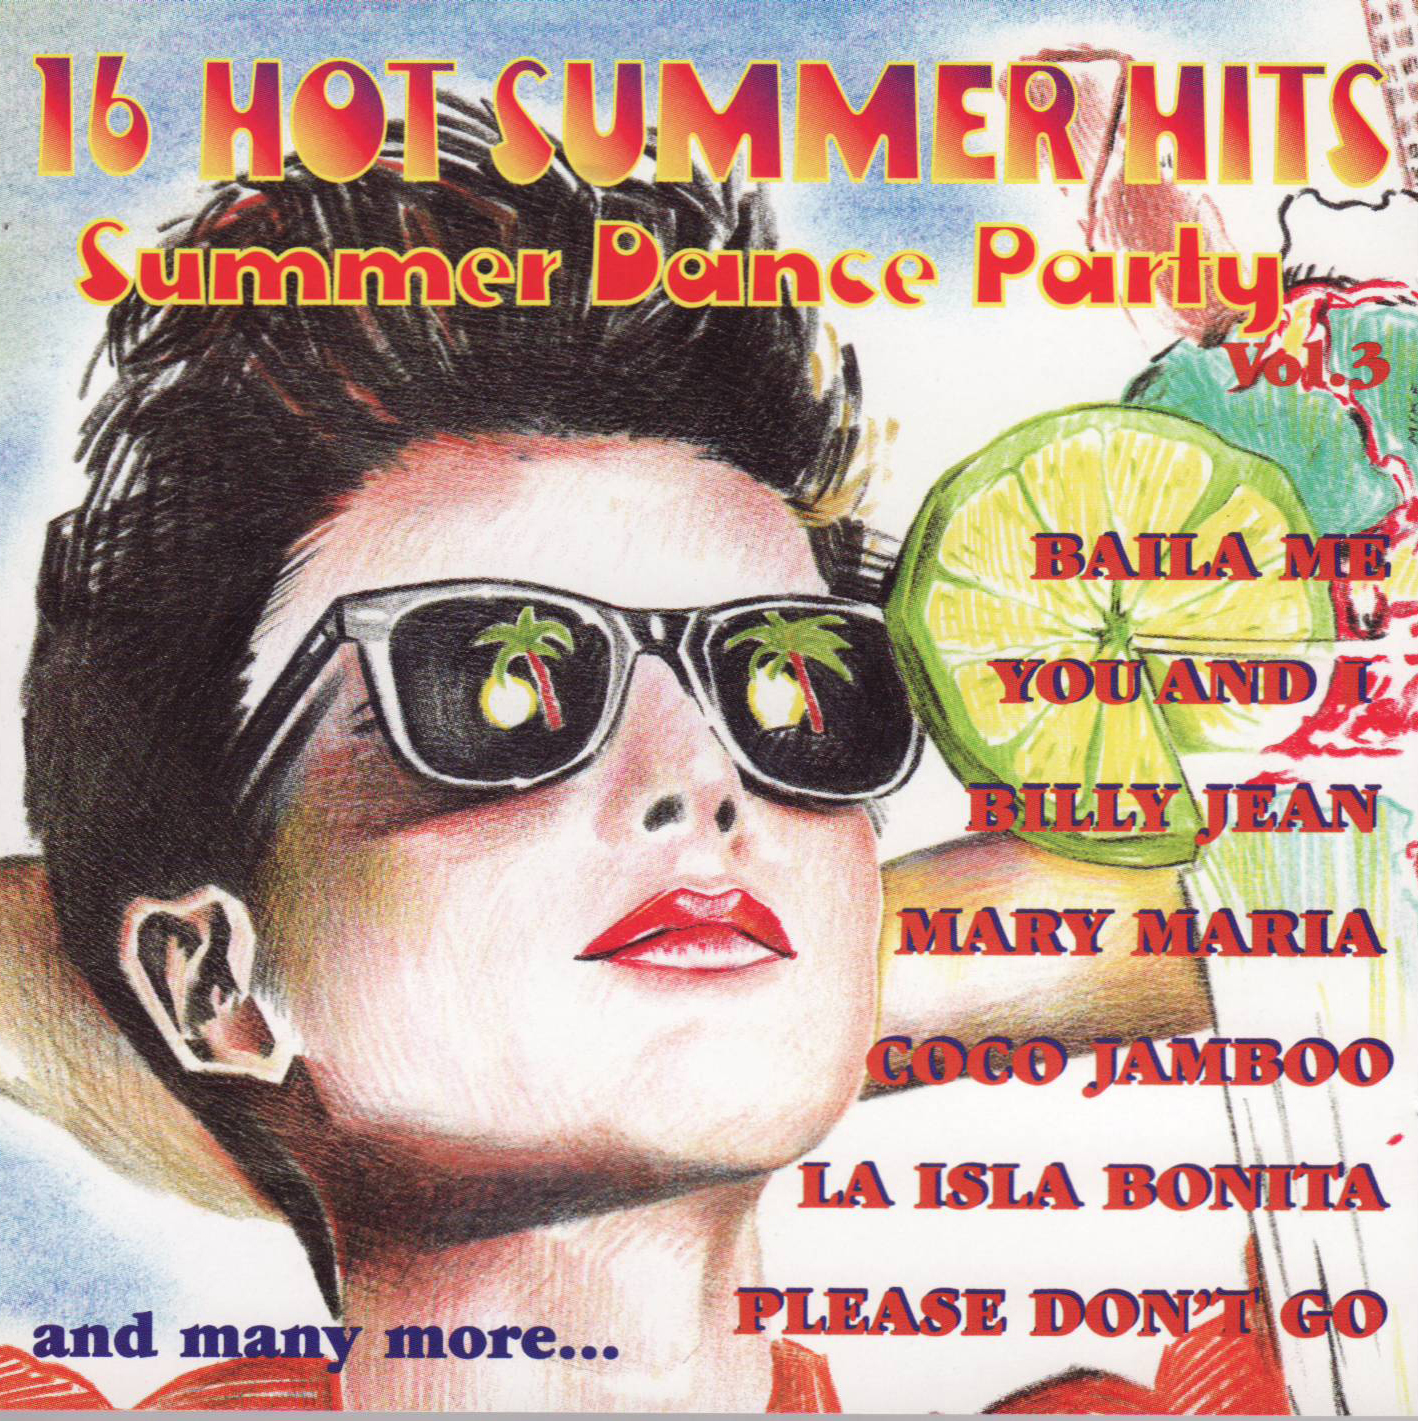 waterman latin singles Read about the best (and worst) of pop music from the 1950s to today with reviews of the most popular albums of yesterday and today.